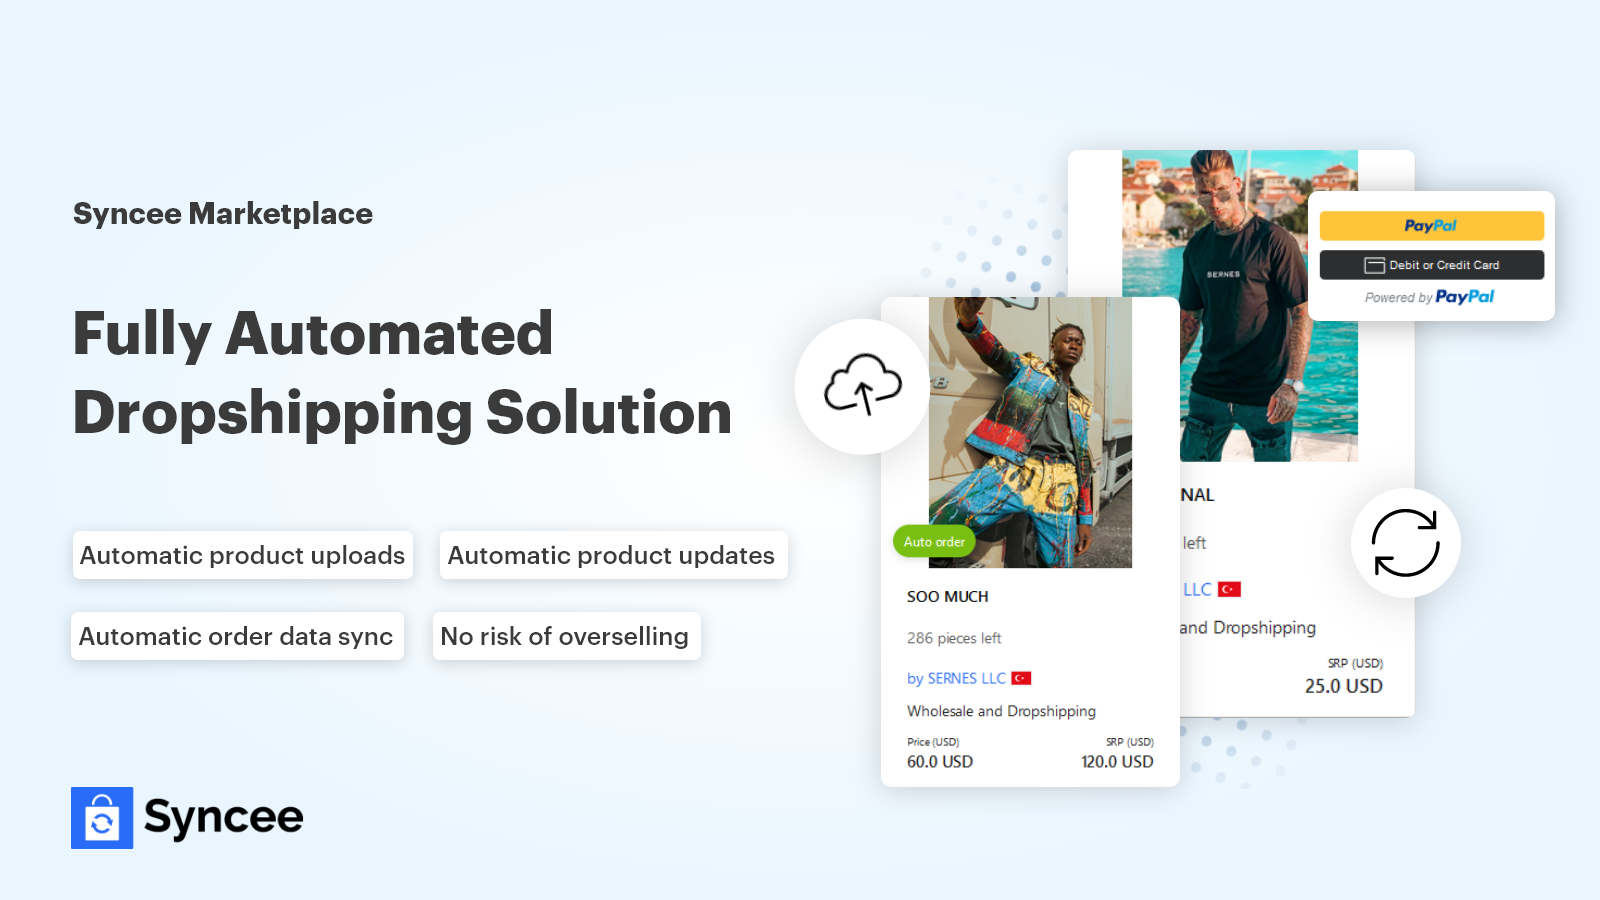 Fully automated dropshipping solution